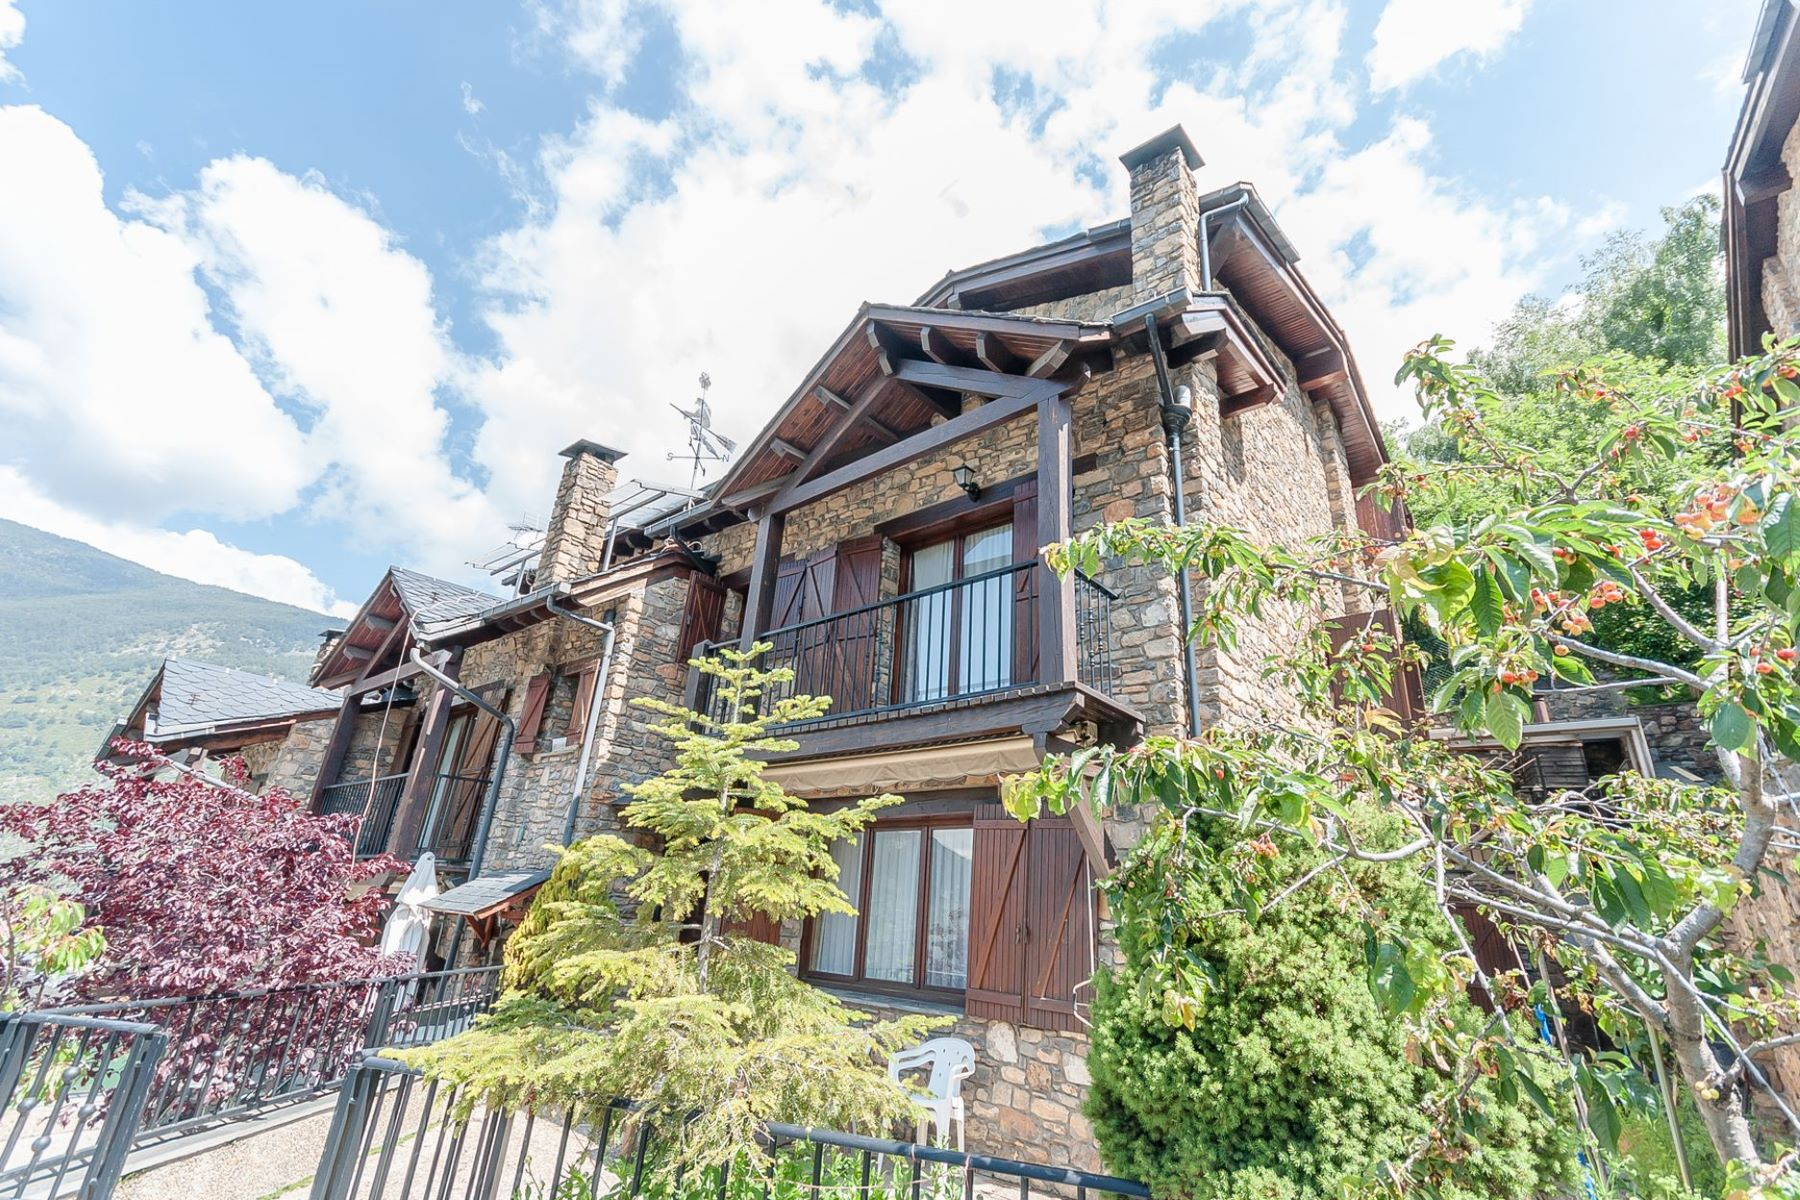 一戸建て のために 売買 アット Attached for sale in Encamp Encamp, Encamp, AD200 Andorra